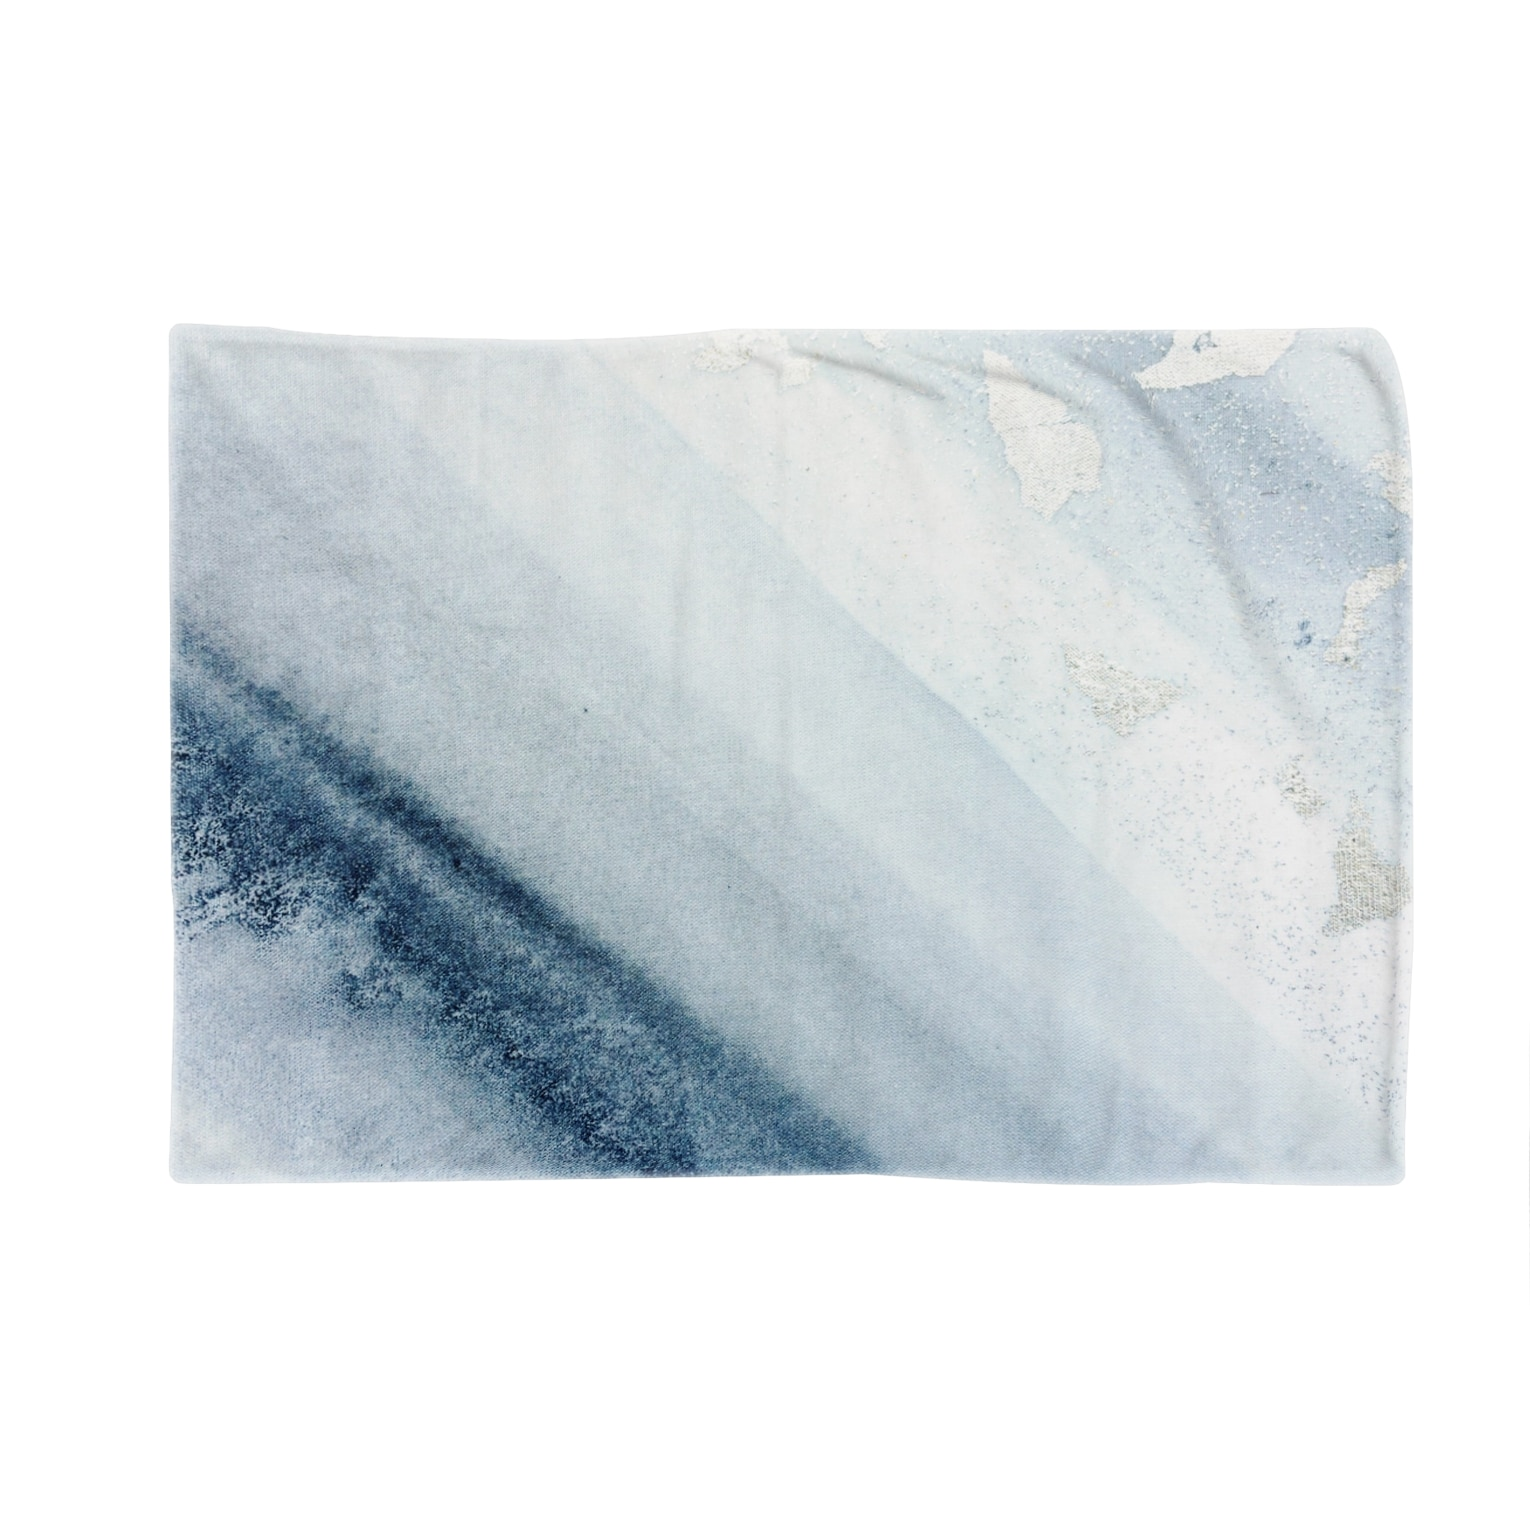 LUCENT LIFEのSumi - Silver leaf Blankets